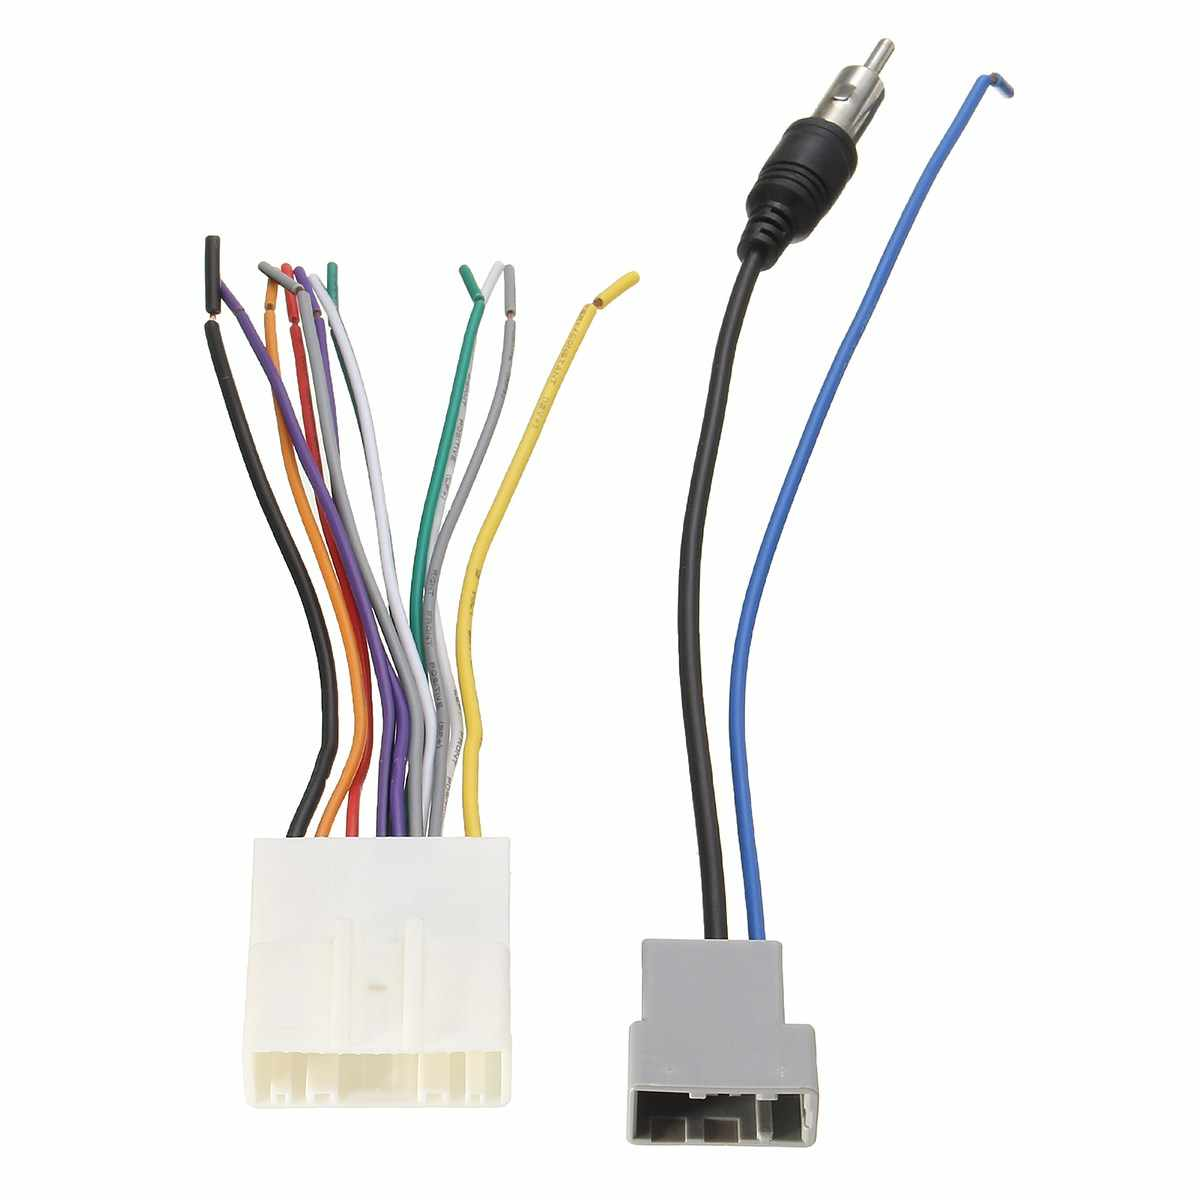 medium resolution of car dvd radio install stereo audio wiring harness cable plugs antenna adapter for nissan 2009